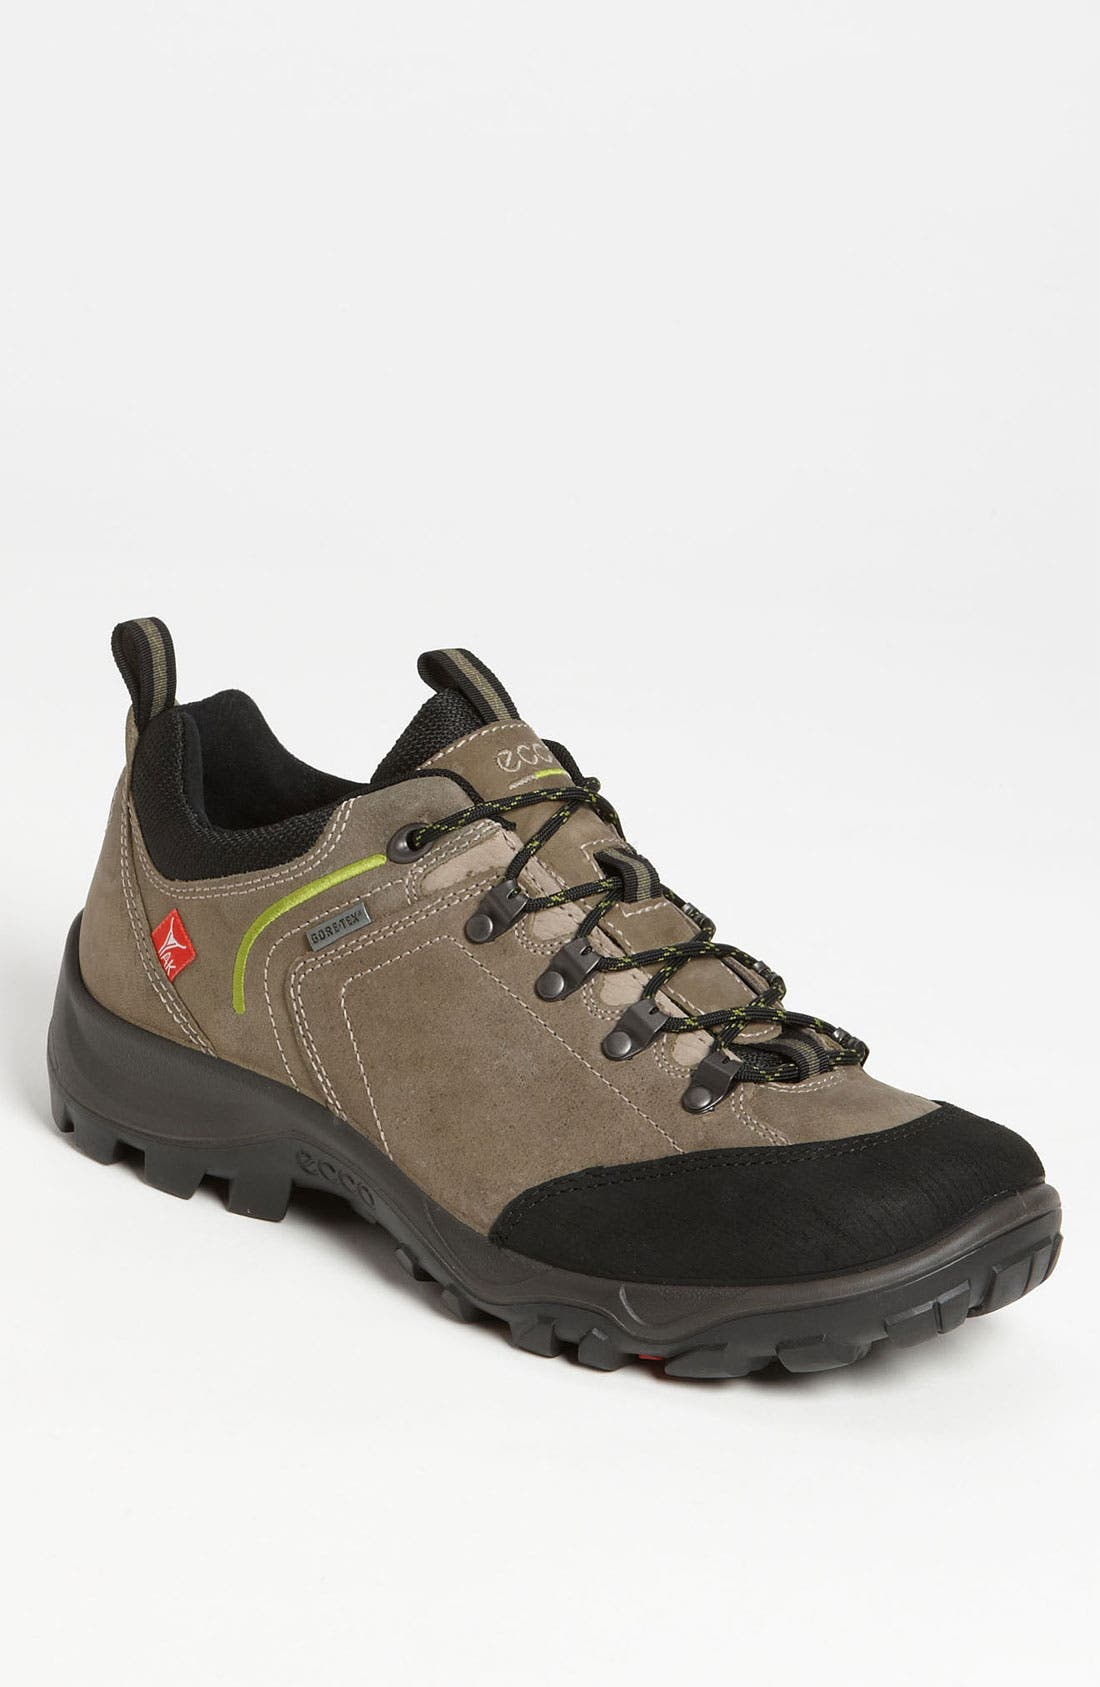 Alternate Image 1 Selected - ECCO 'Sayan Low II GTX' Hiking Shoe (Men)